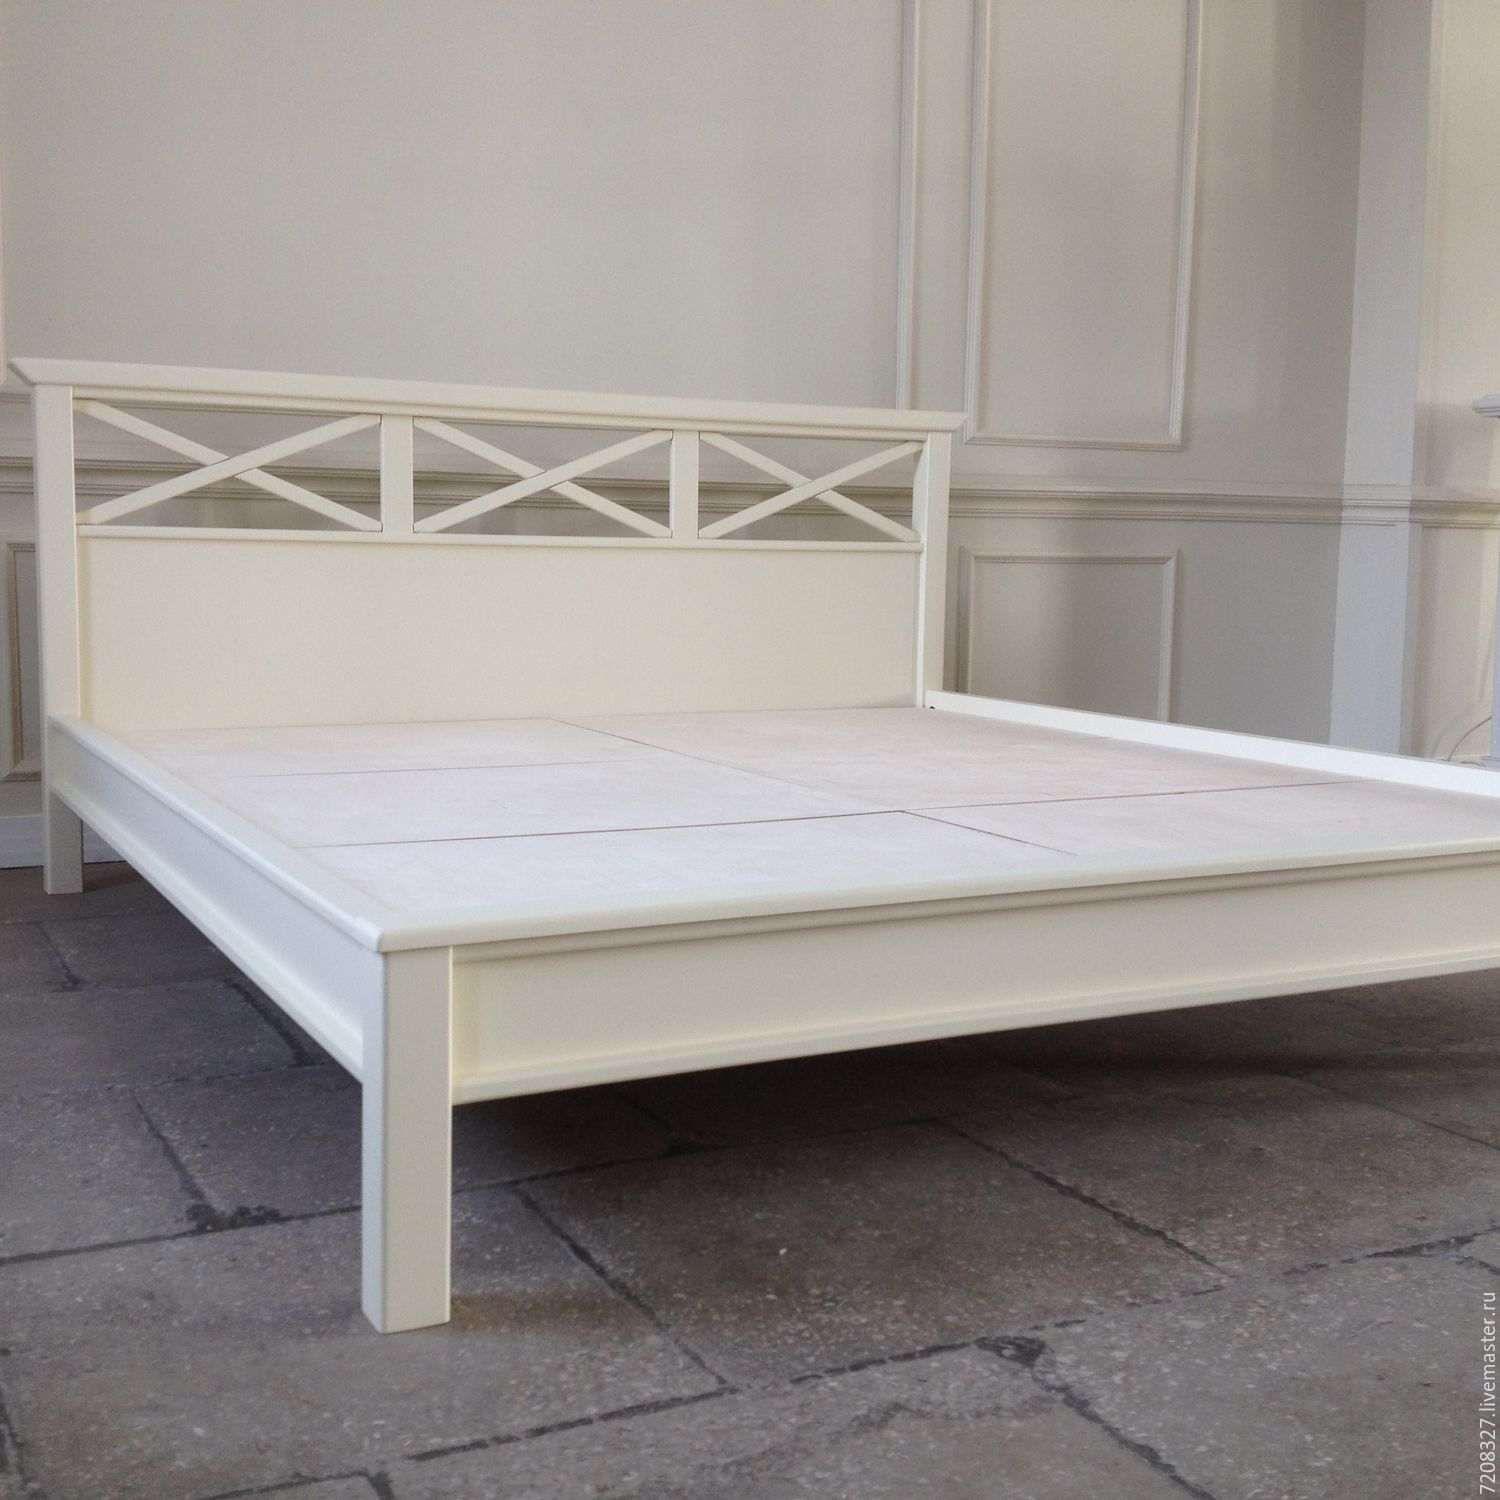 Wooden bed made of solid beech wood with a beautiful crossover elements at the head. The difference in color, size, materials is possible, due to manual work.